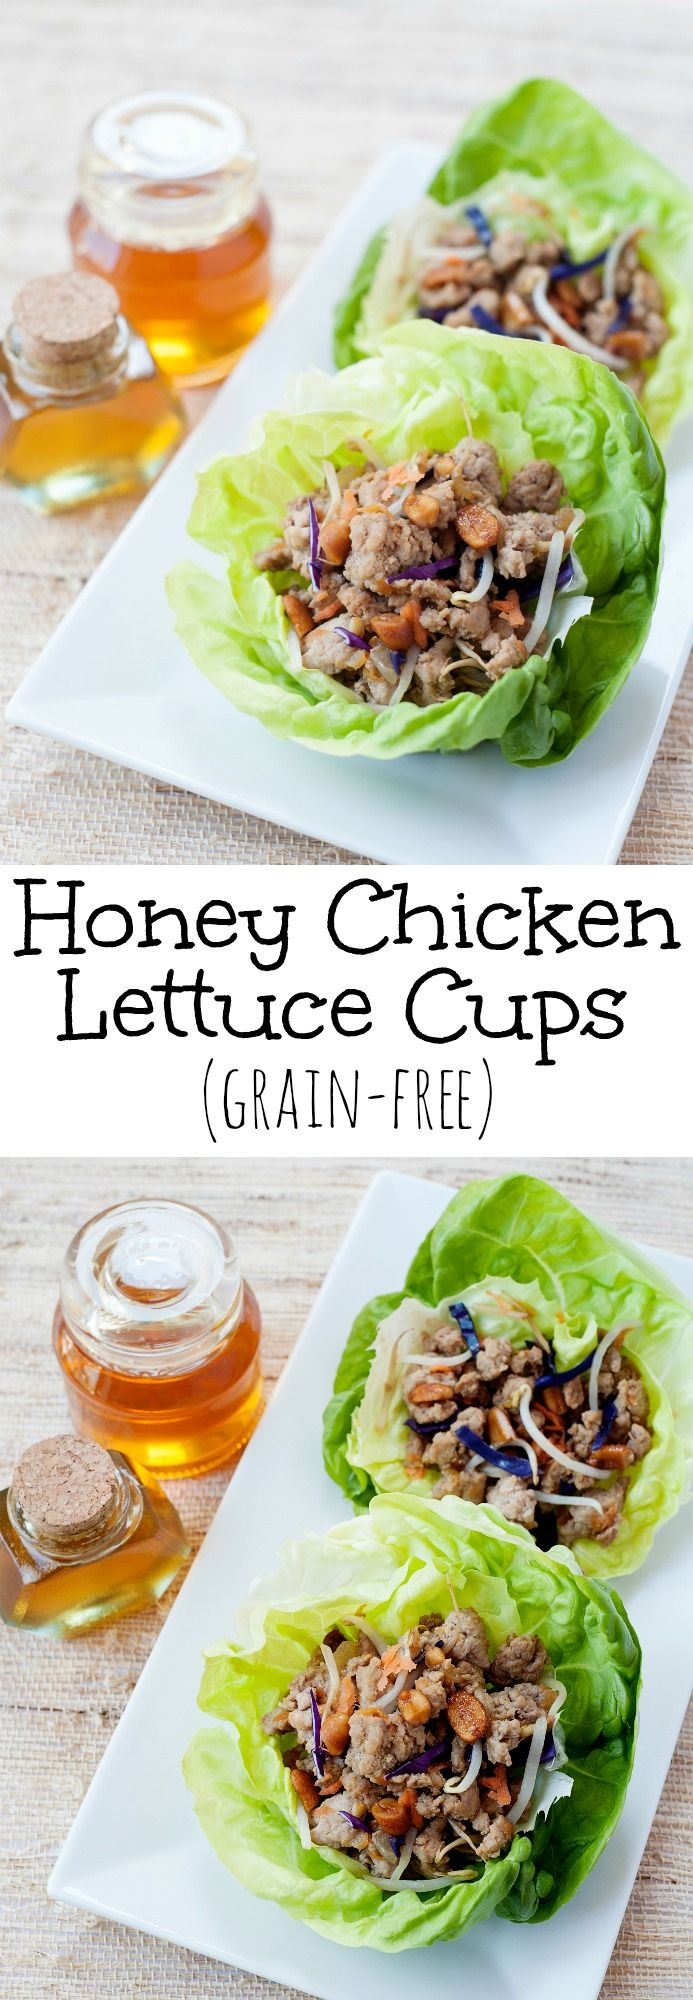 Honey Chicken Lettuce Cups: Easy skillet recipe for Asian style lettuce wraps. Better than PF Changs. ;)